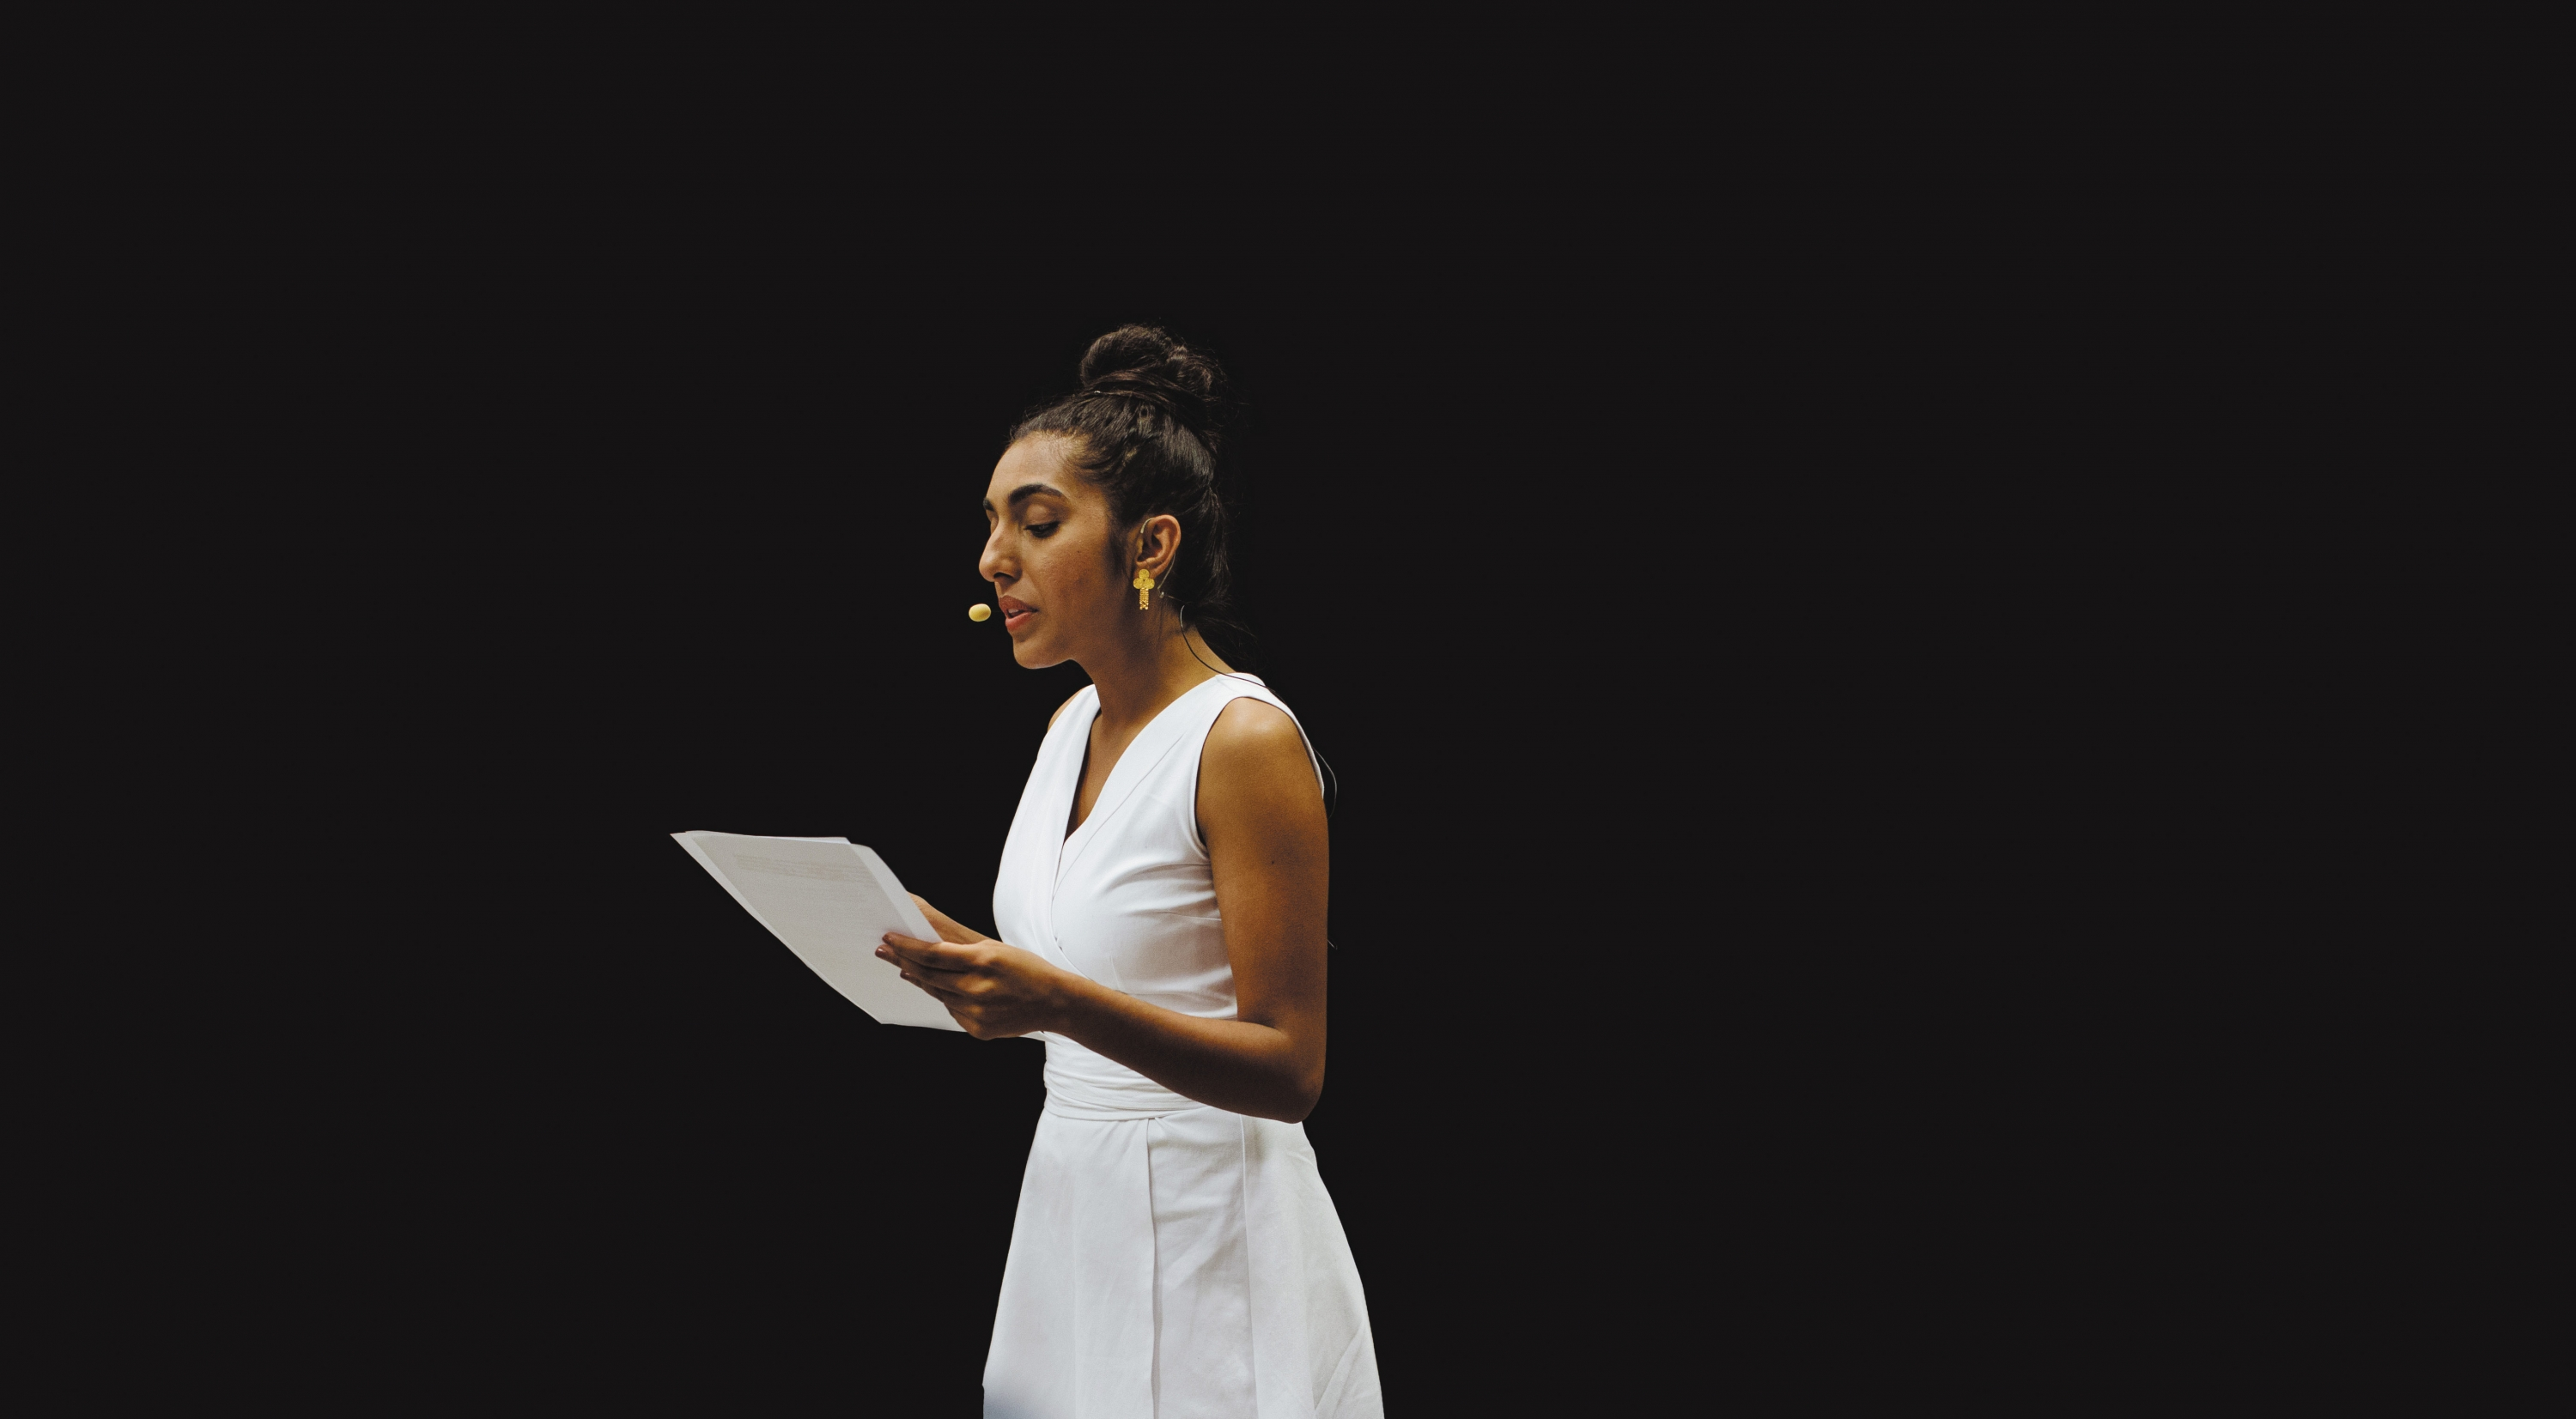 Rupi Kaur in white dress reading from script